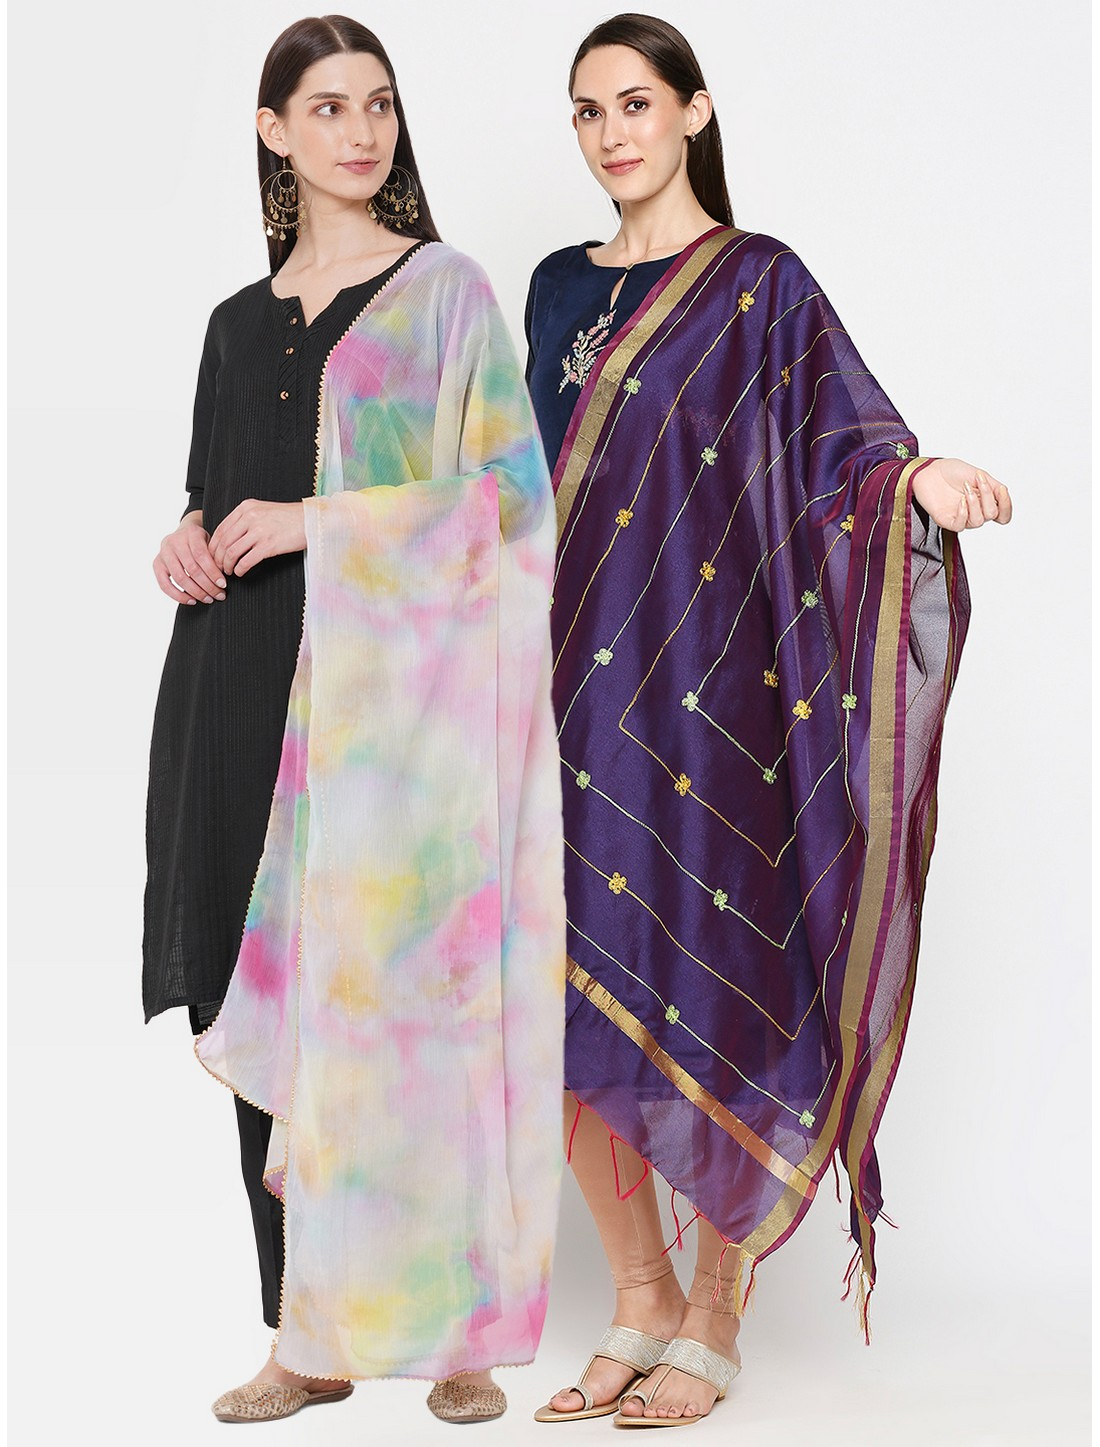 Get Wrapped | Get Wrapped Digital Printed Dupatta & a Gold Border Dupatta for Women - Combo Pack of 2